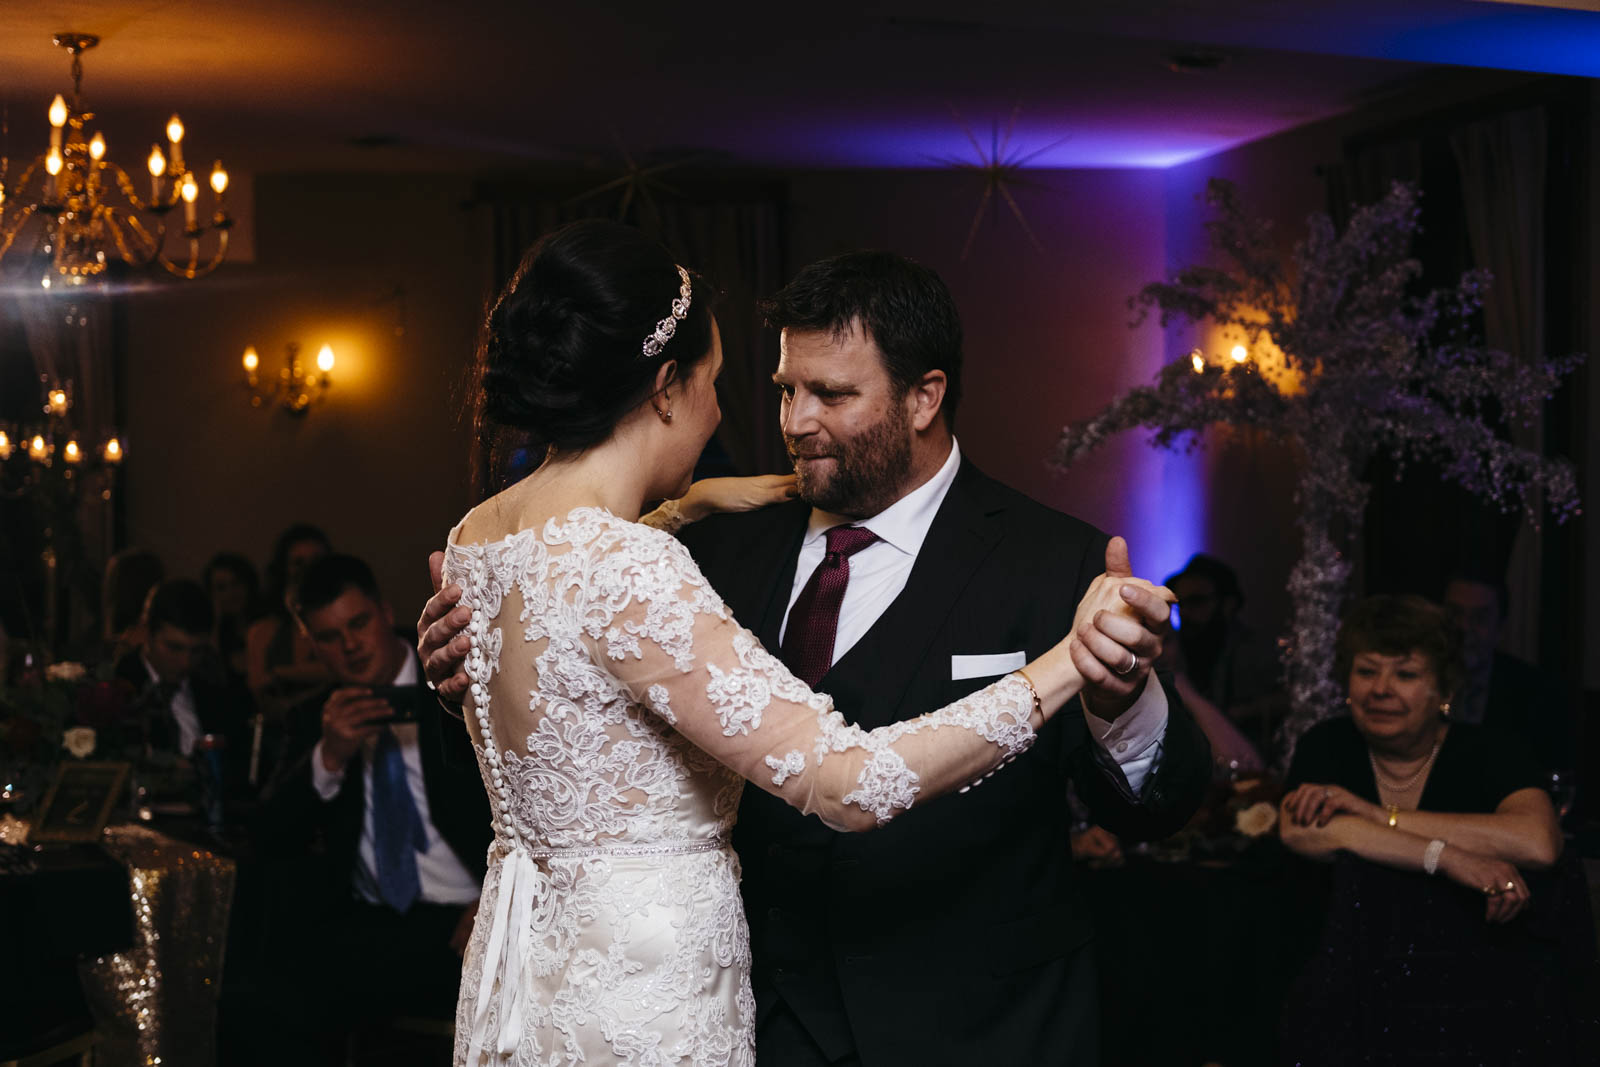 Bride and groom share first dance at wedding reception at Langley Hall.